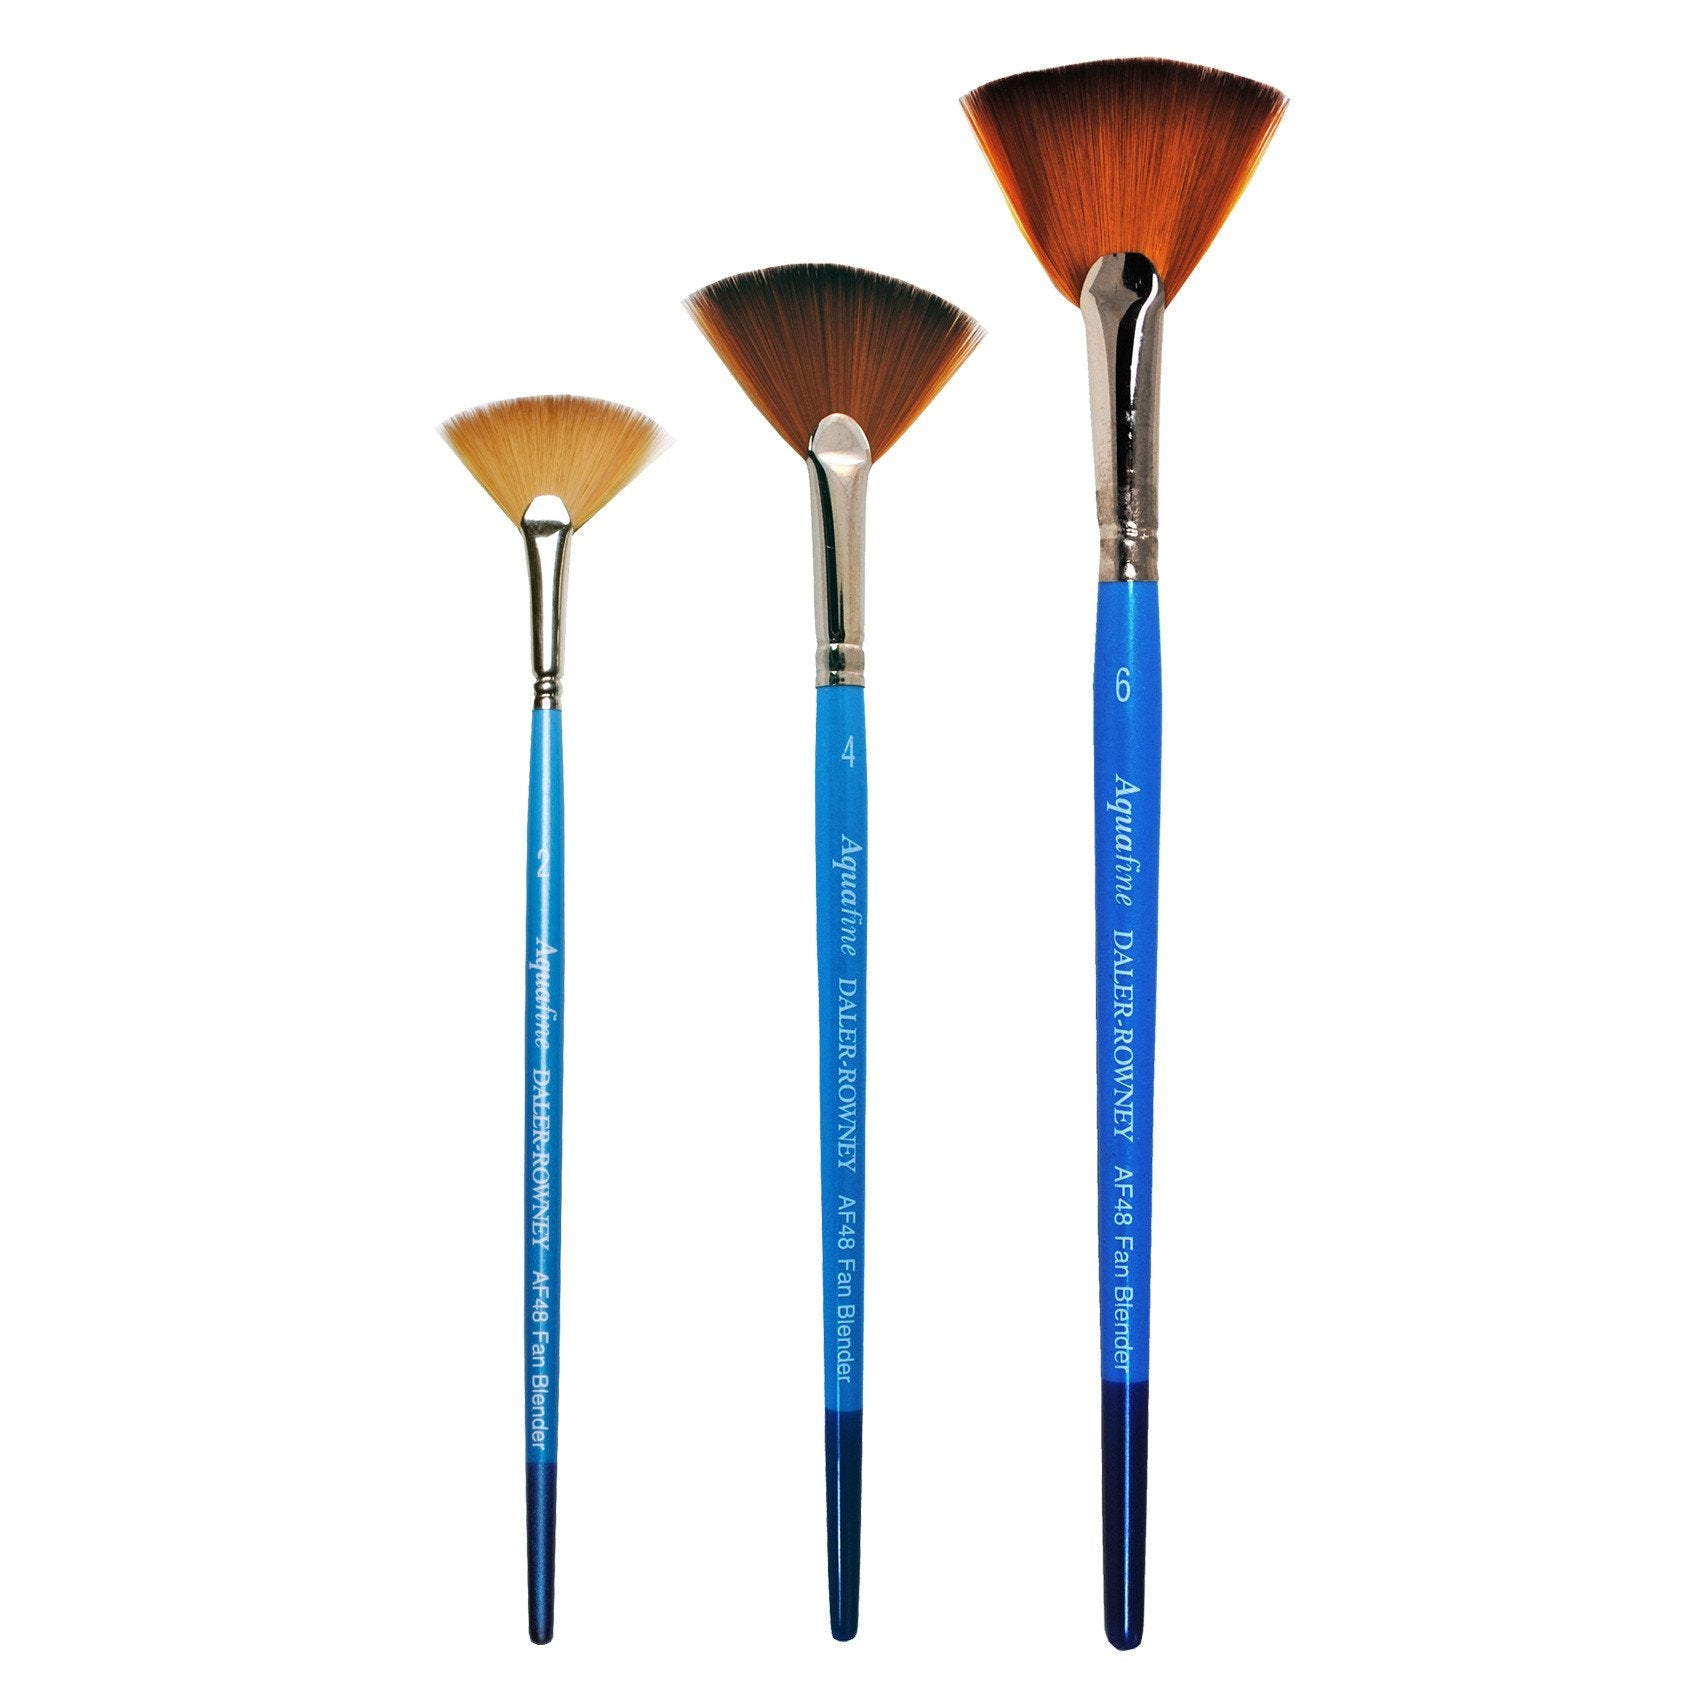 Daler-Rowney's Aquafine watercolour brushes are made using a formulation of thick and thin filaments, tapered to a point, as well as different lengths. This process imitates that of natural sable hair but because they are synthetic they offer longer life and affordability. The fan-shaped head is used for subtle blending of colour on the surface and in dry brushwork, for distant trees and foreground foliage.